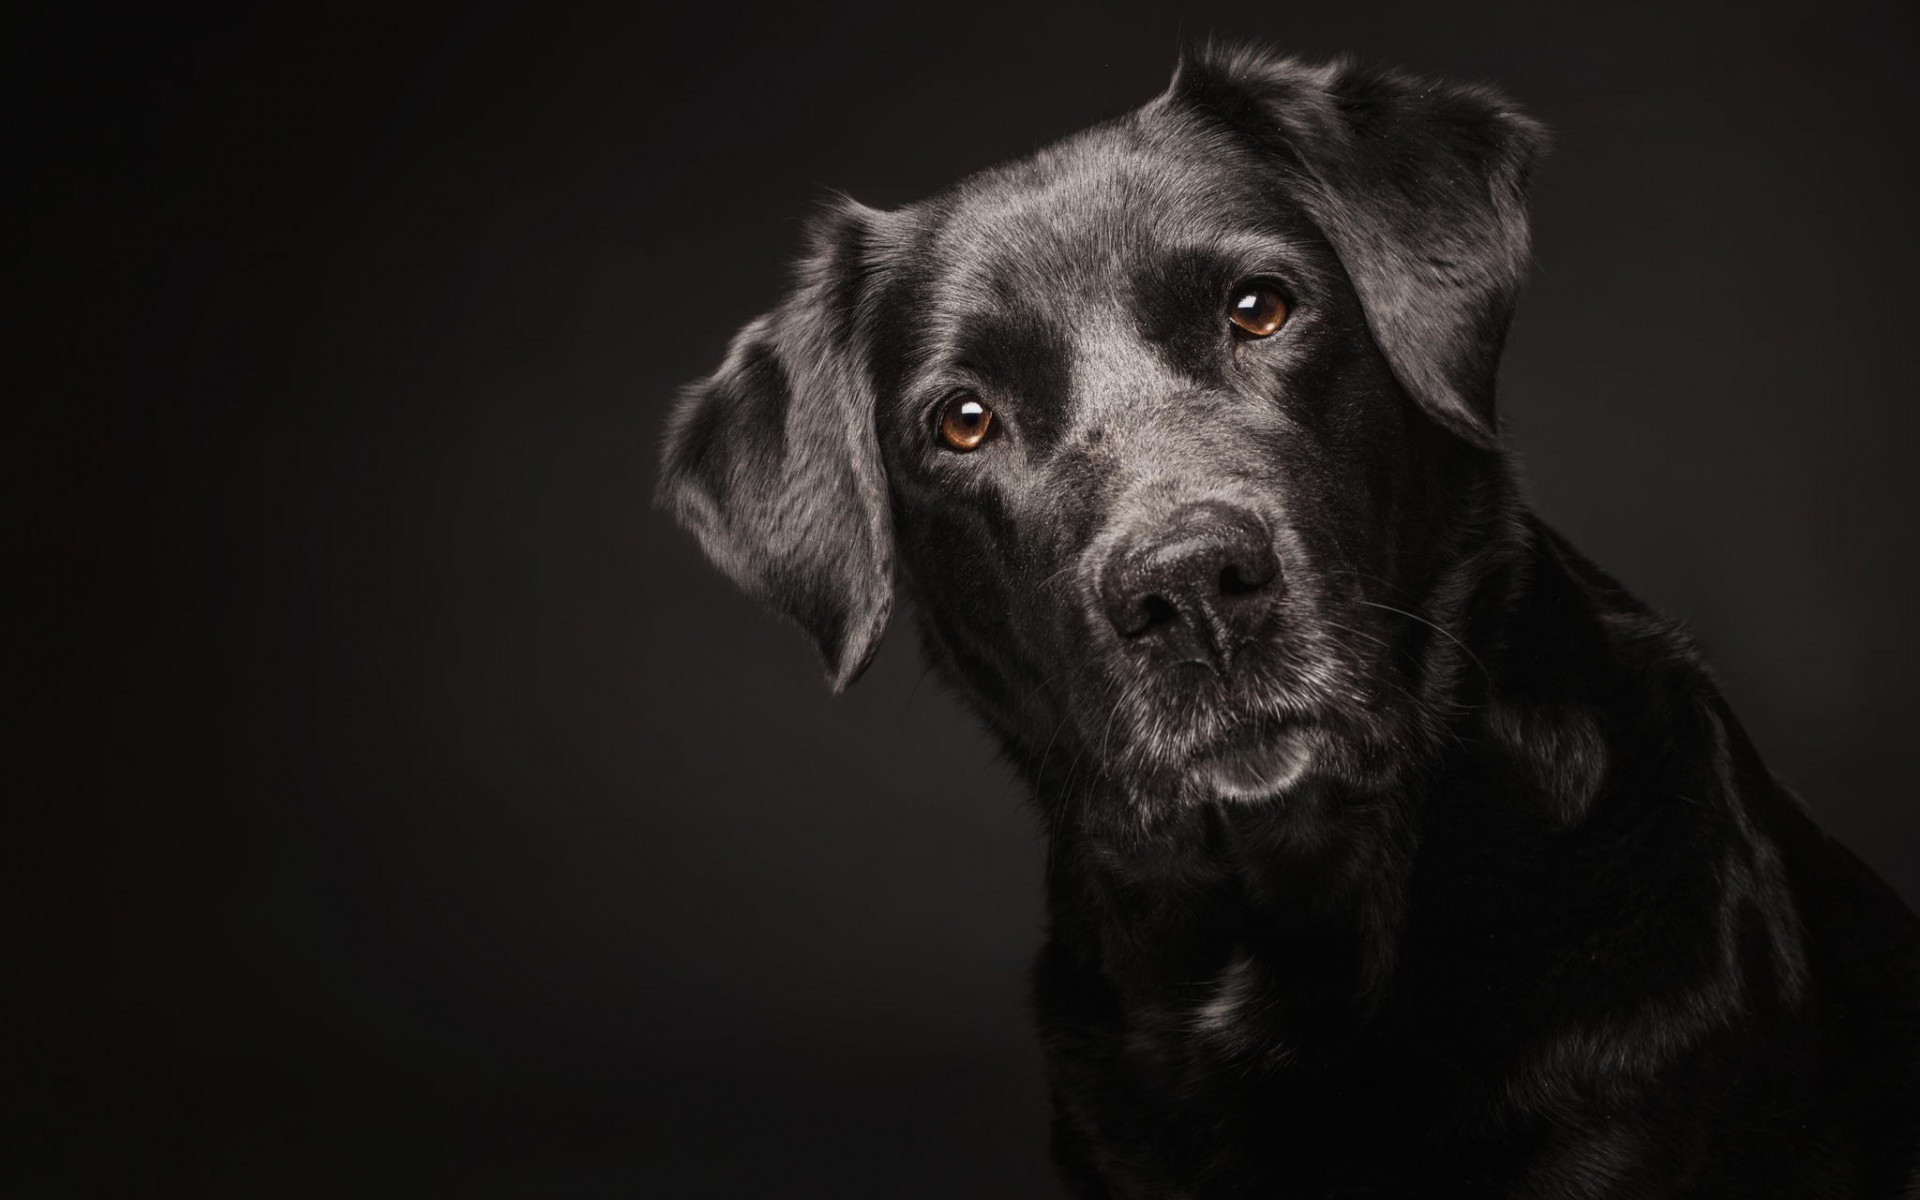 Animal Background Images HD Dog Images Download Dog Wallpapers 1920x1200